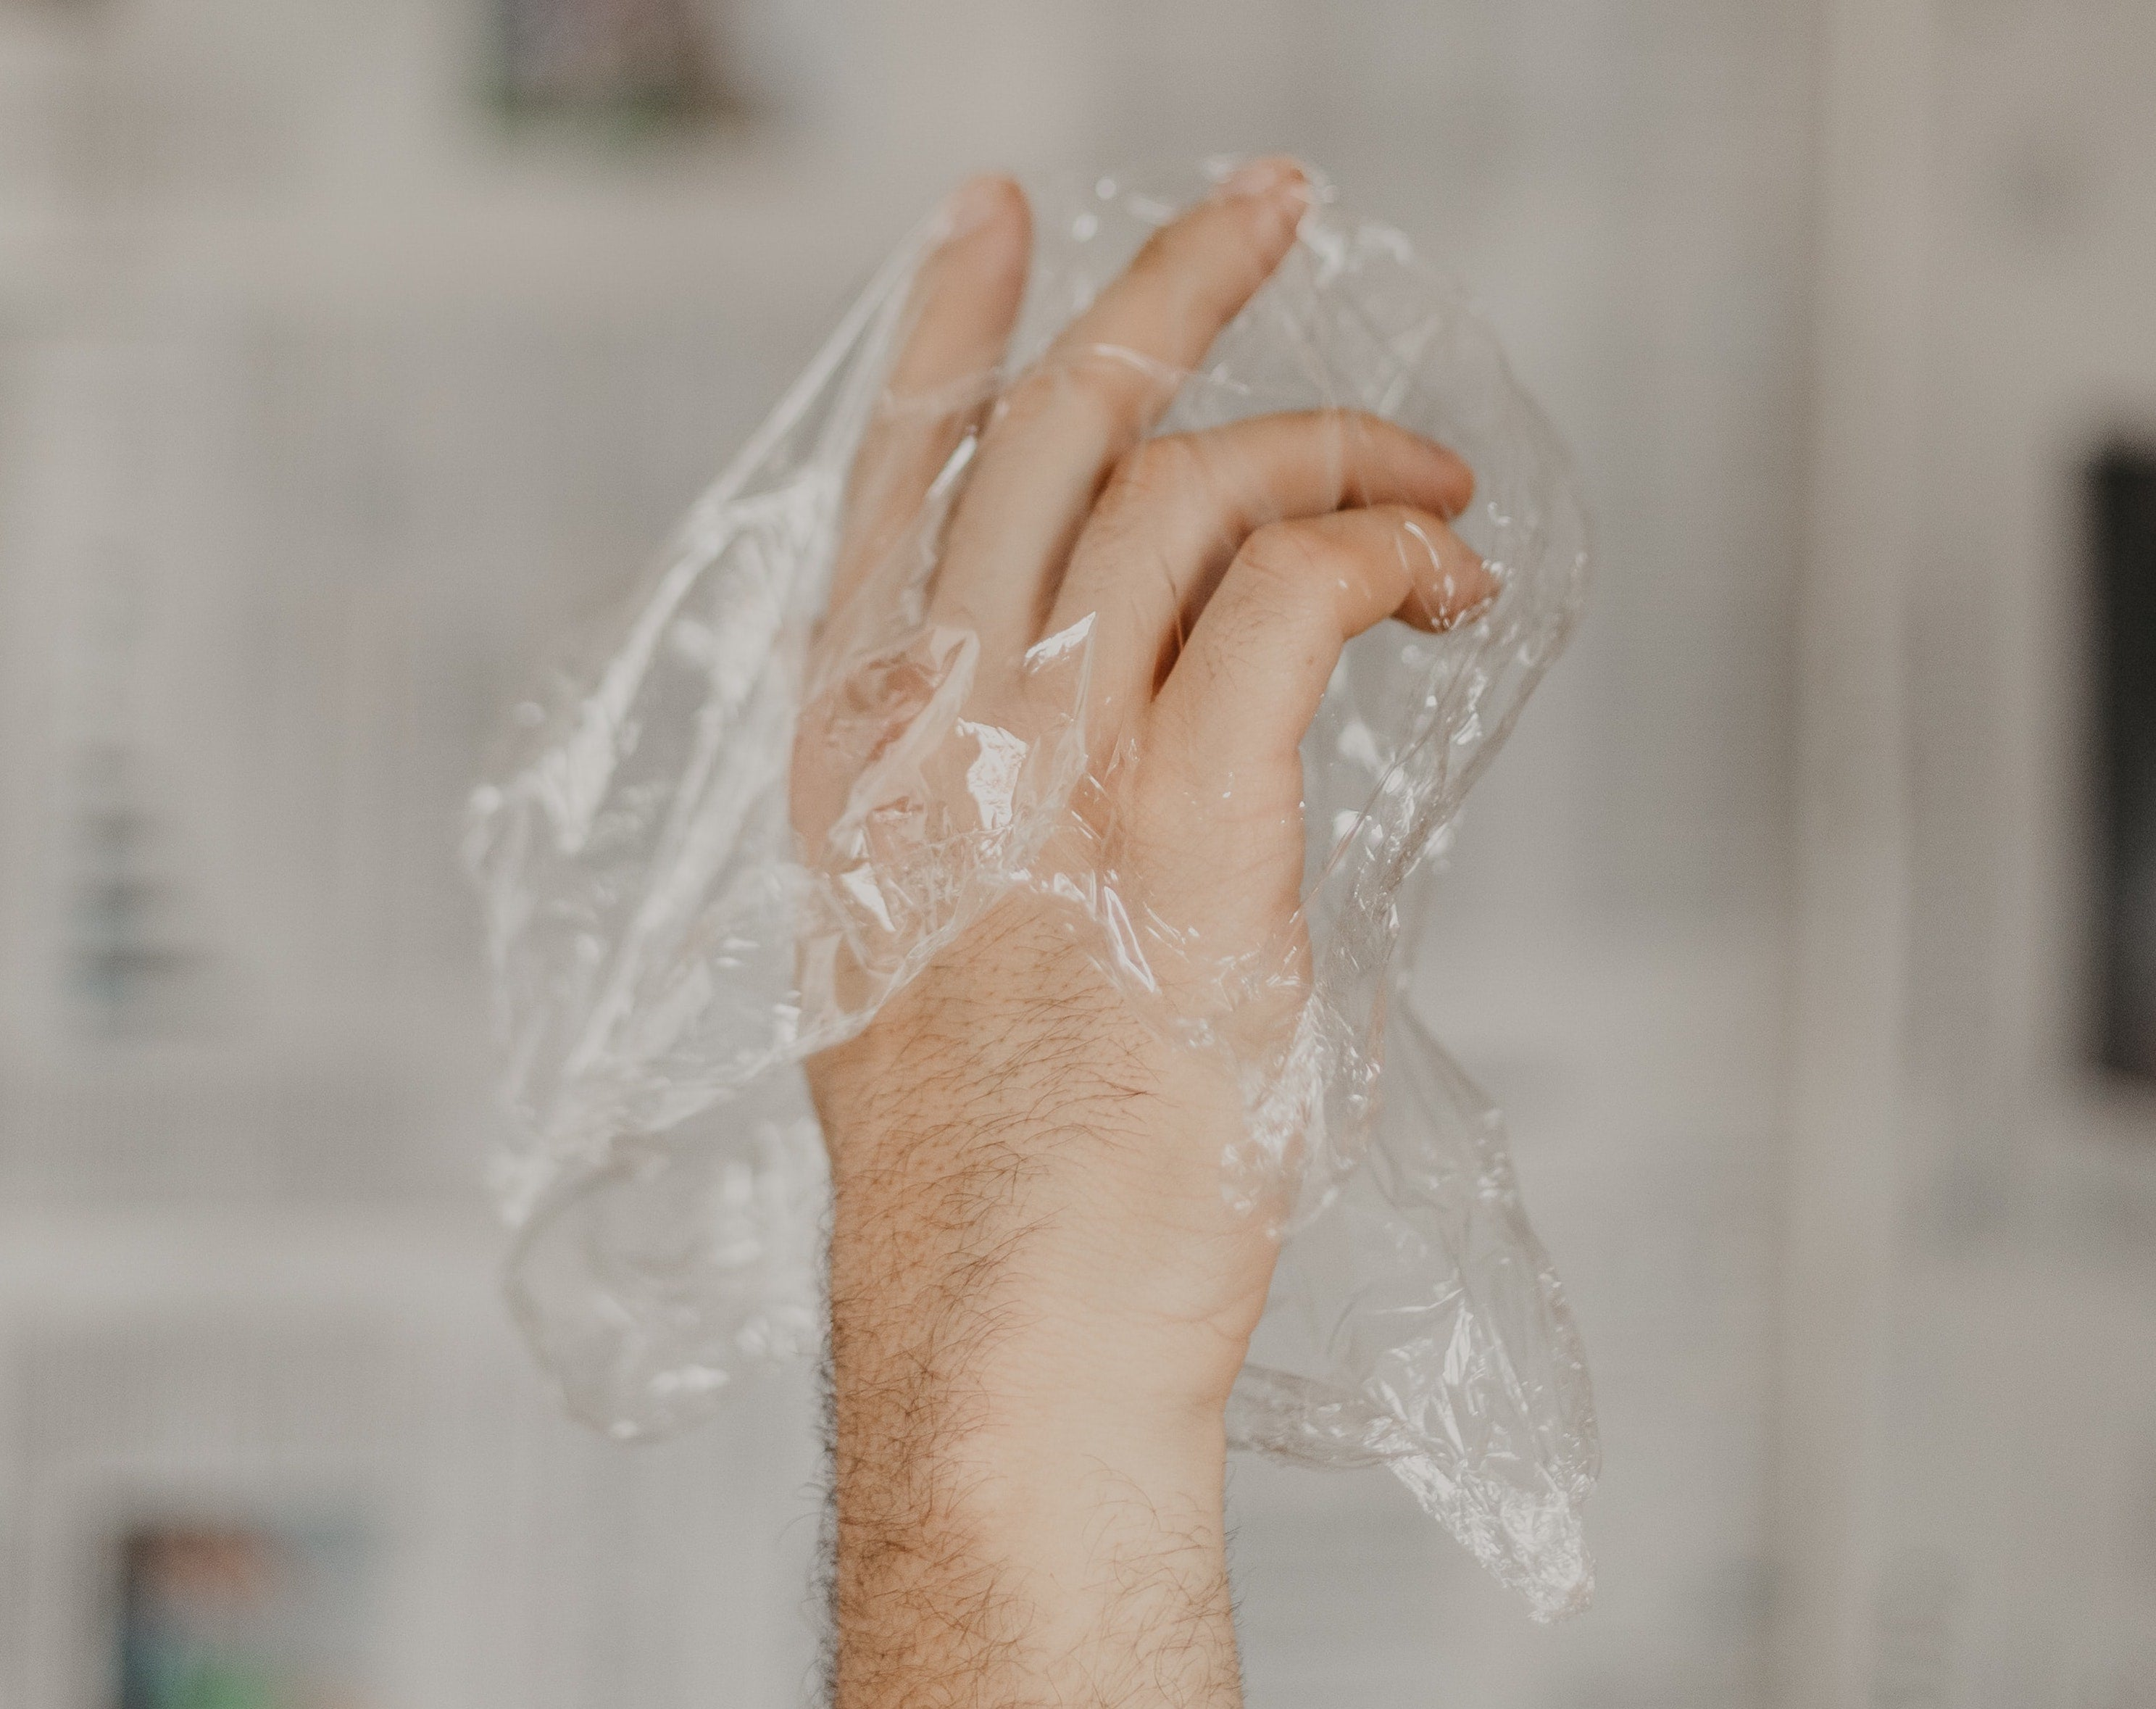 Dainty hand in a plastic bag